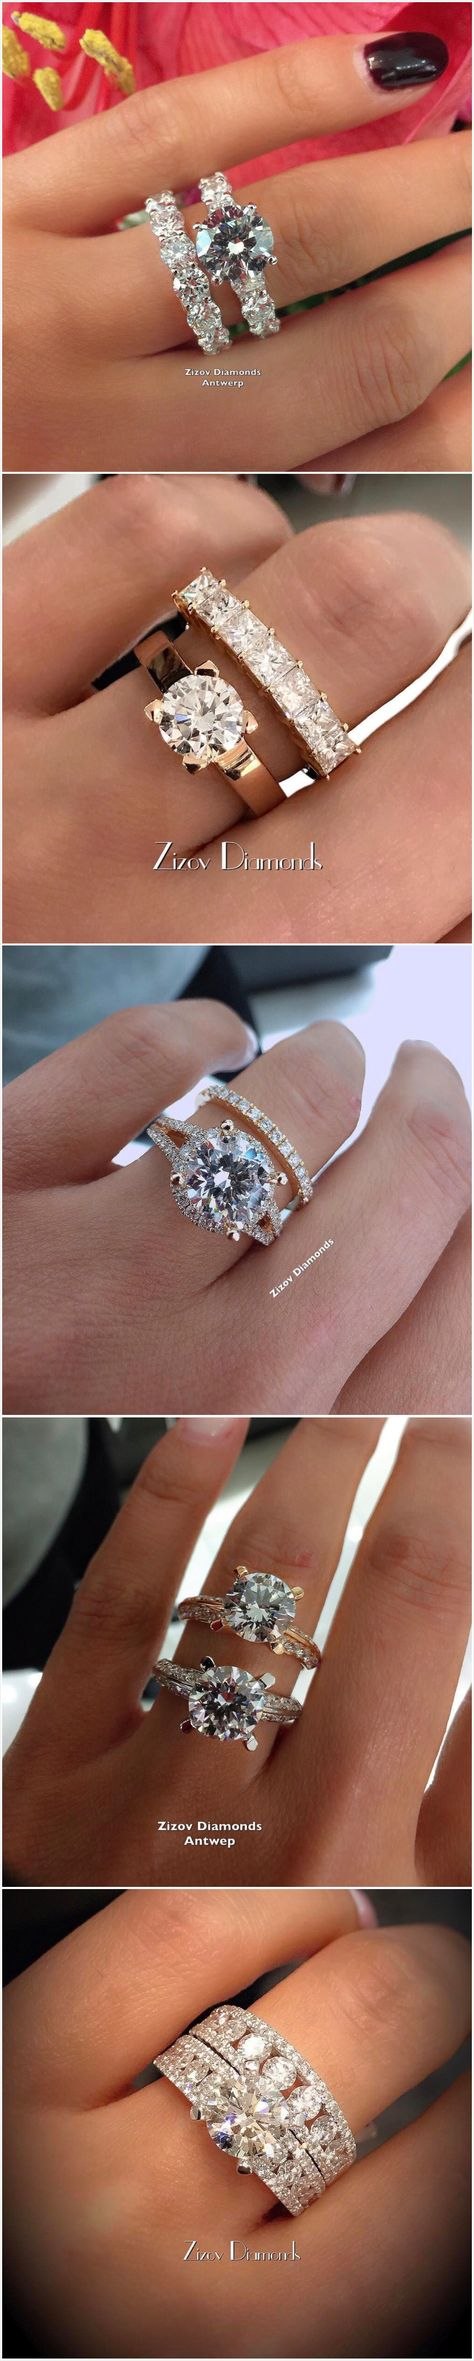 engagement design diamond crop custom solitaire flawless ring front jean dousset margaret handcrafted rings grey